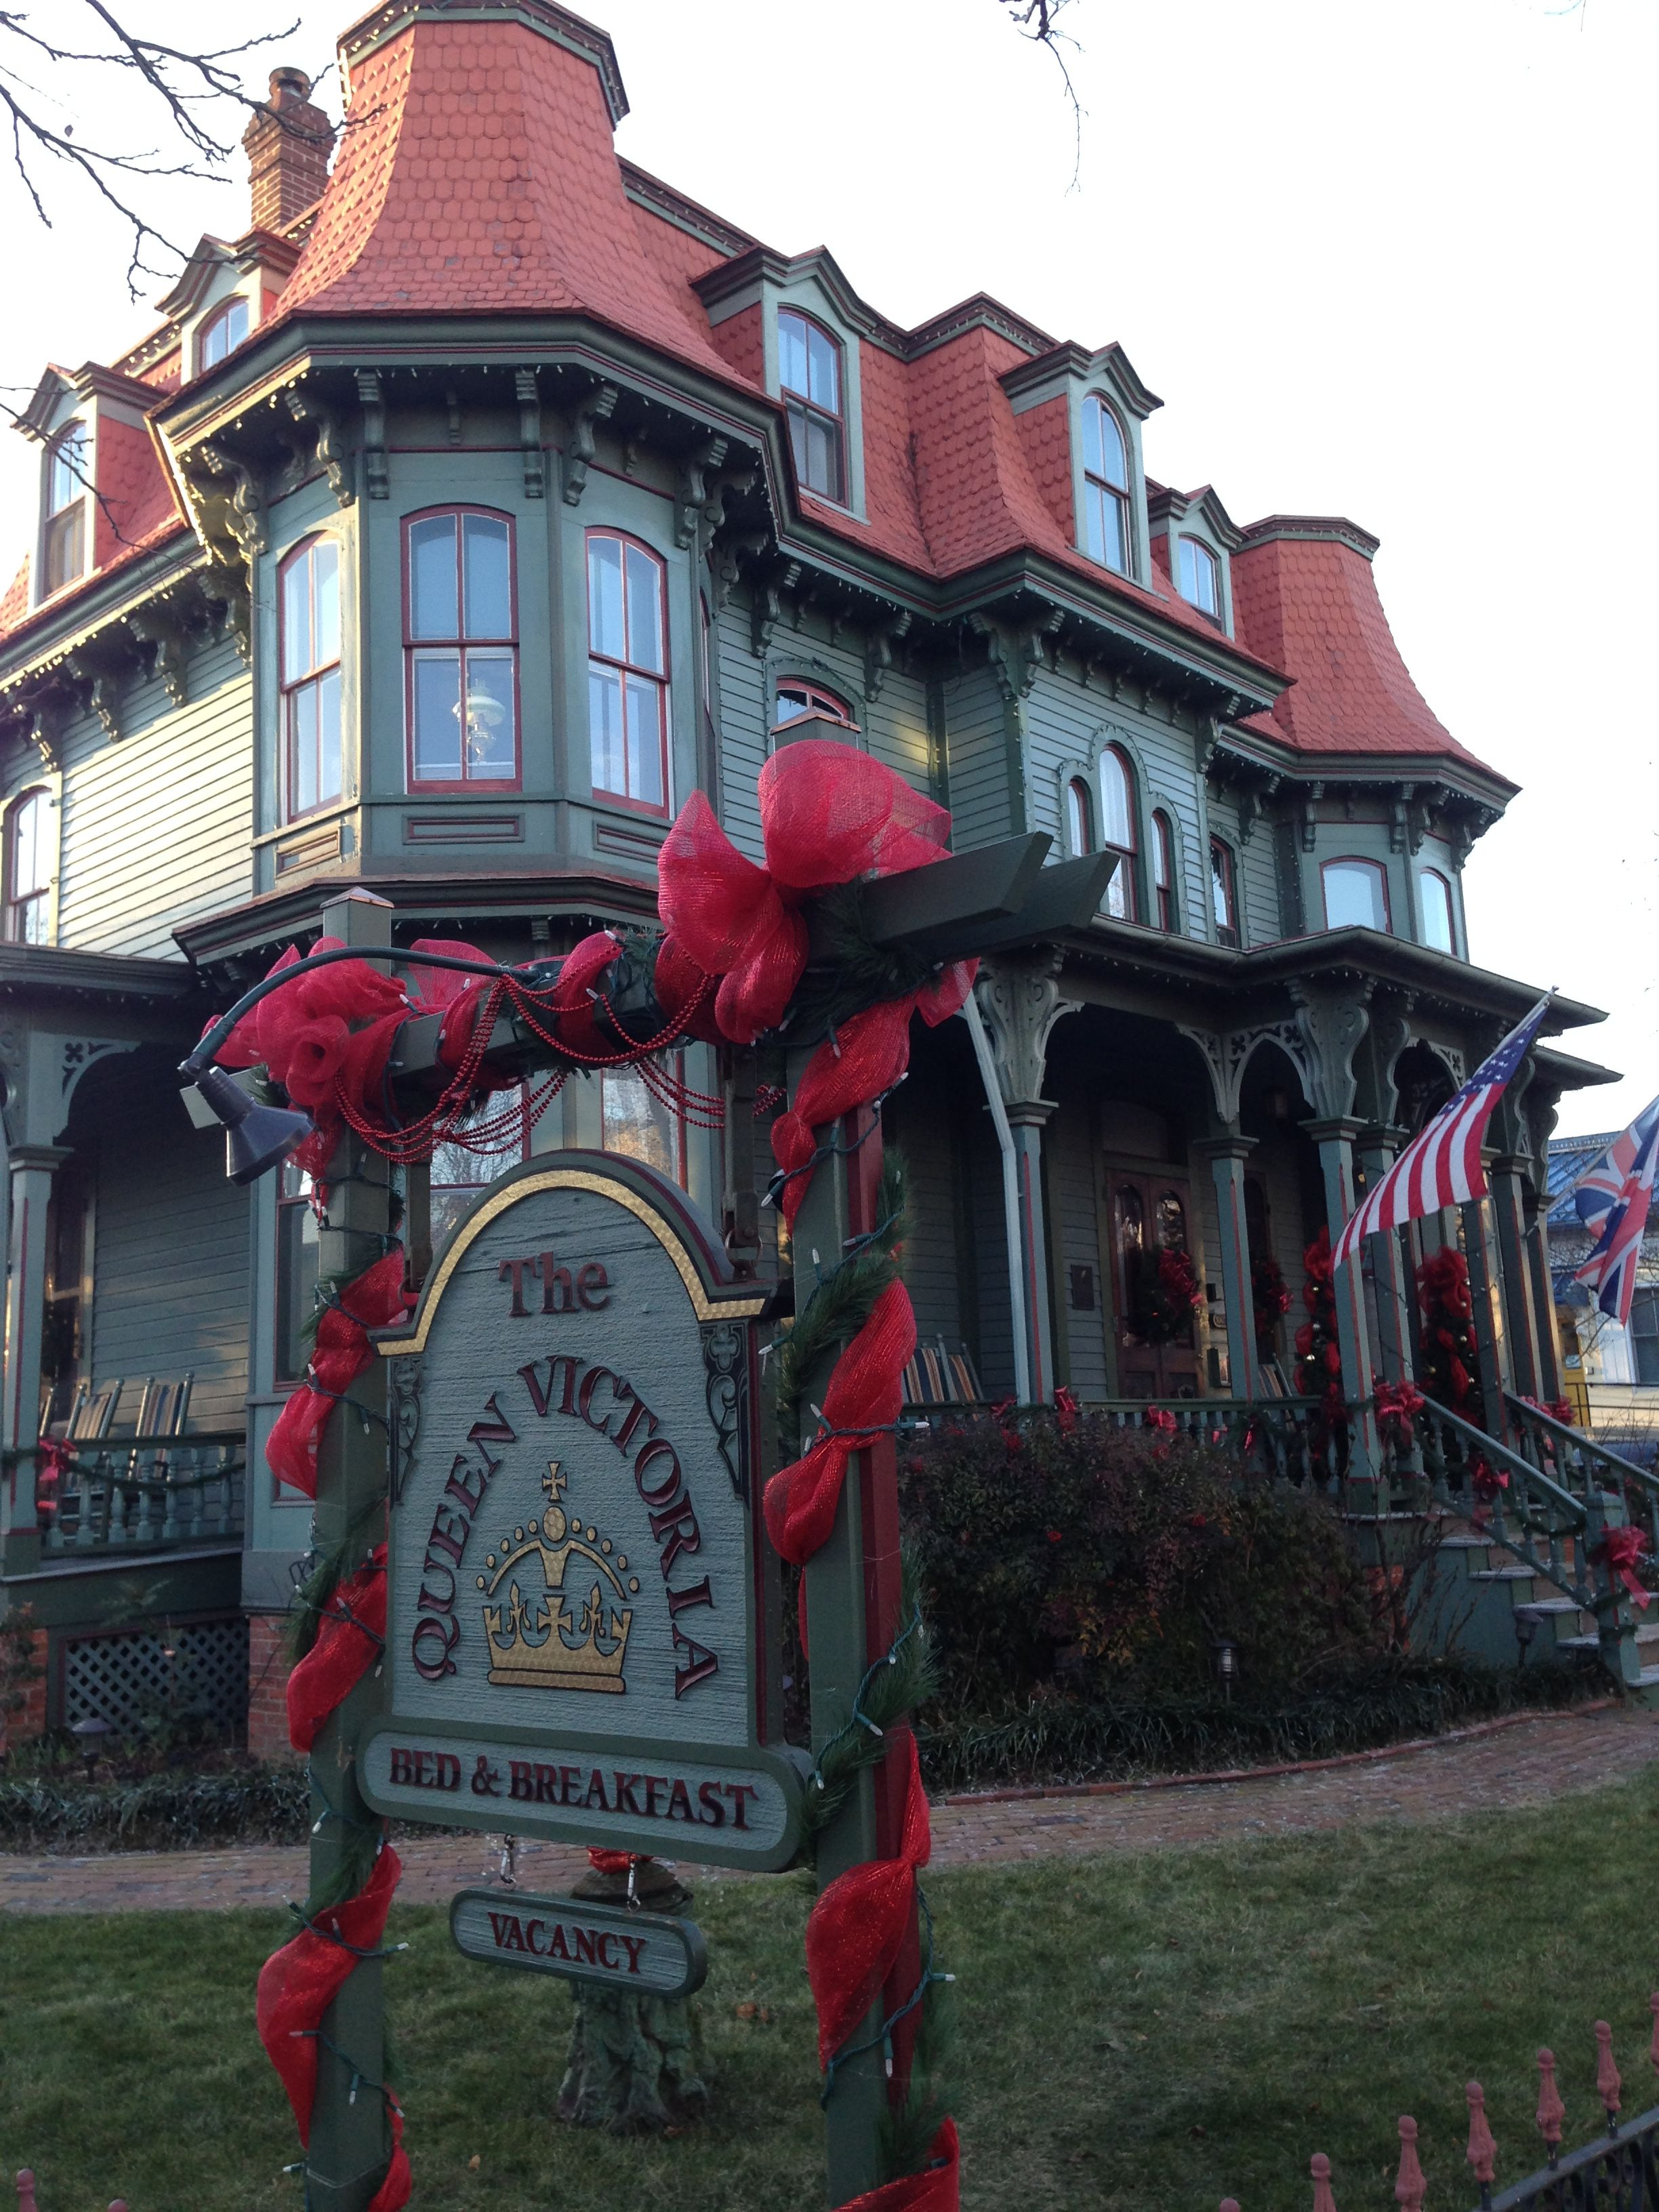 The Queen Victoria Bed & Breakfast Cape May NJ USA